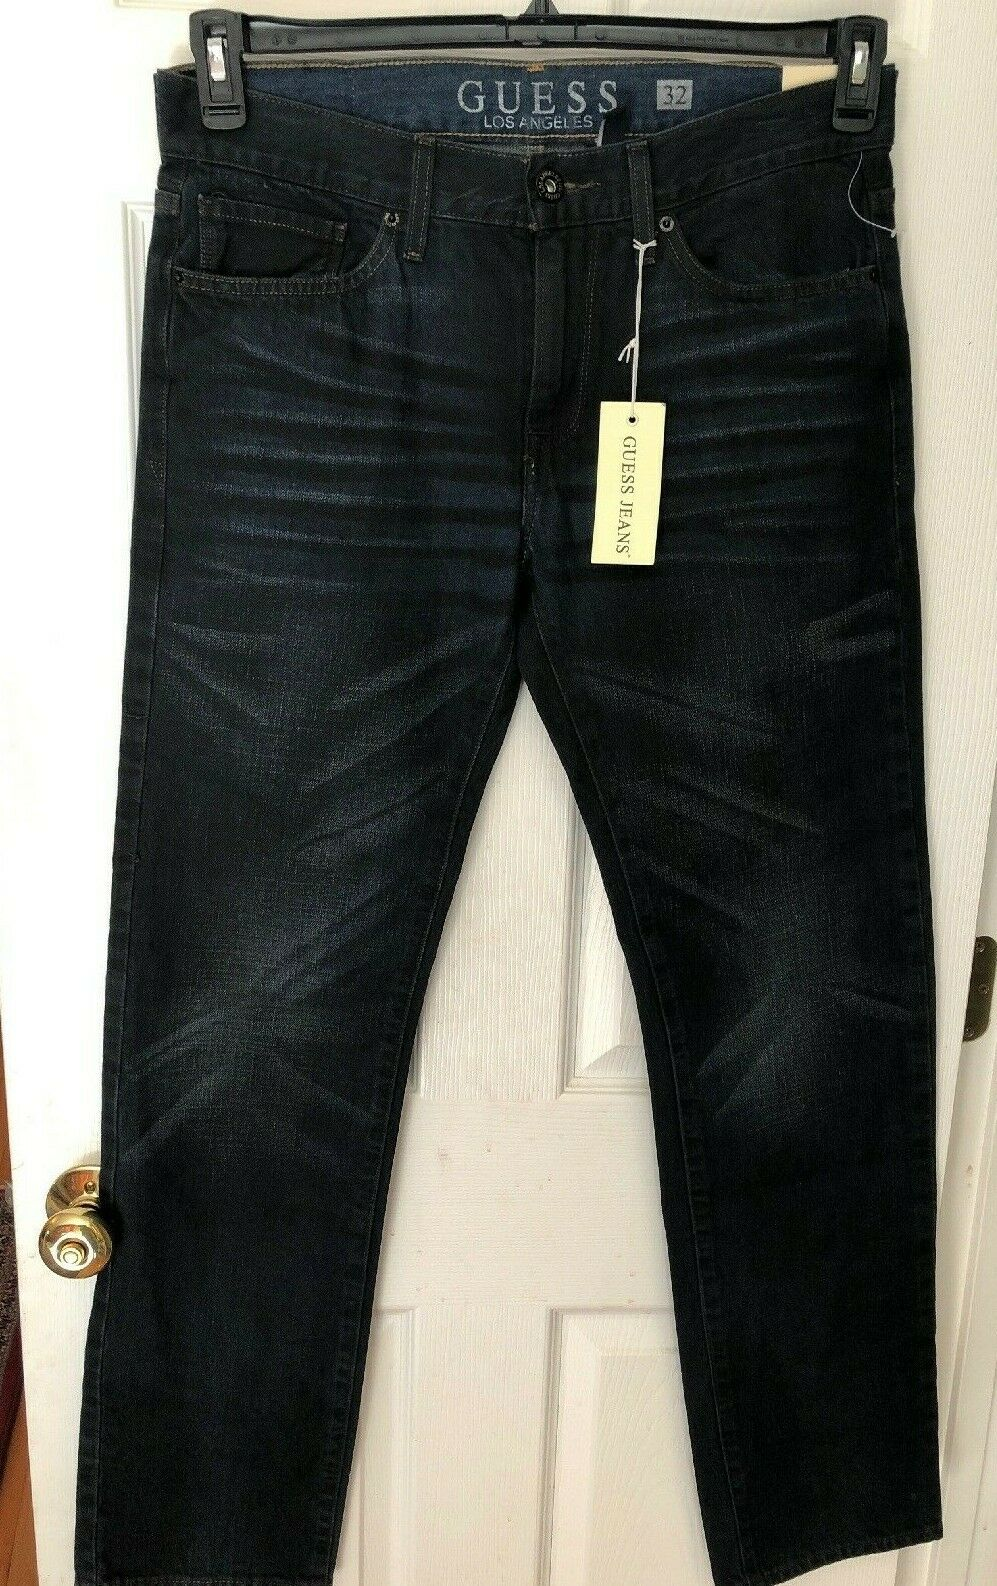 Guess Men's Jeans New with Tags Size 32X32 bluee Jeans Slim and Straight